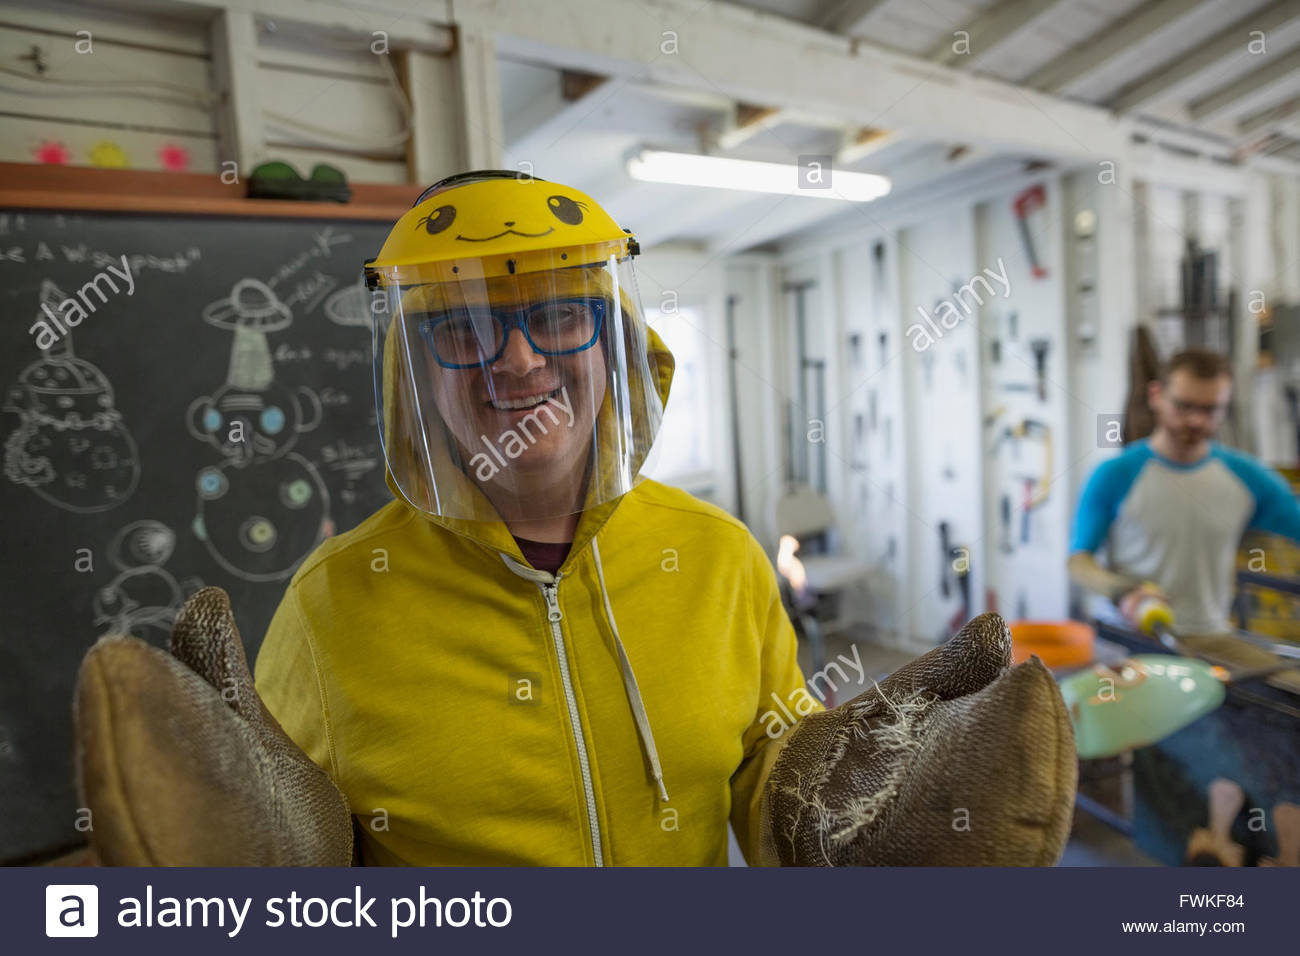 Portrait smiling glassblower in protective workwear and gloves - Stock Image